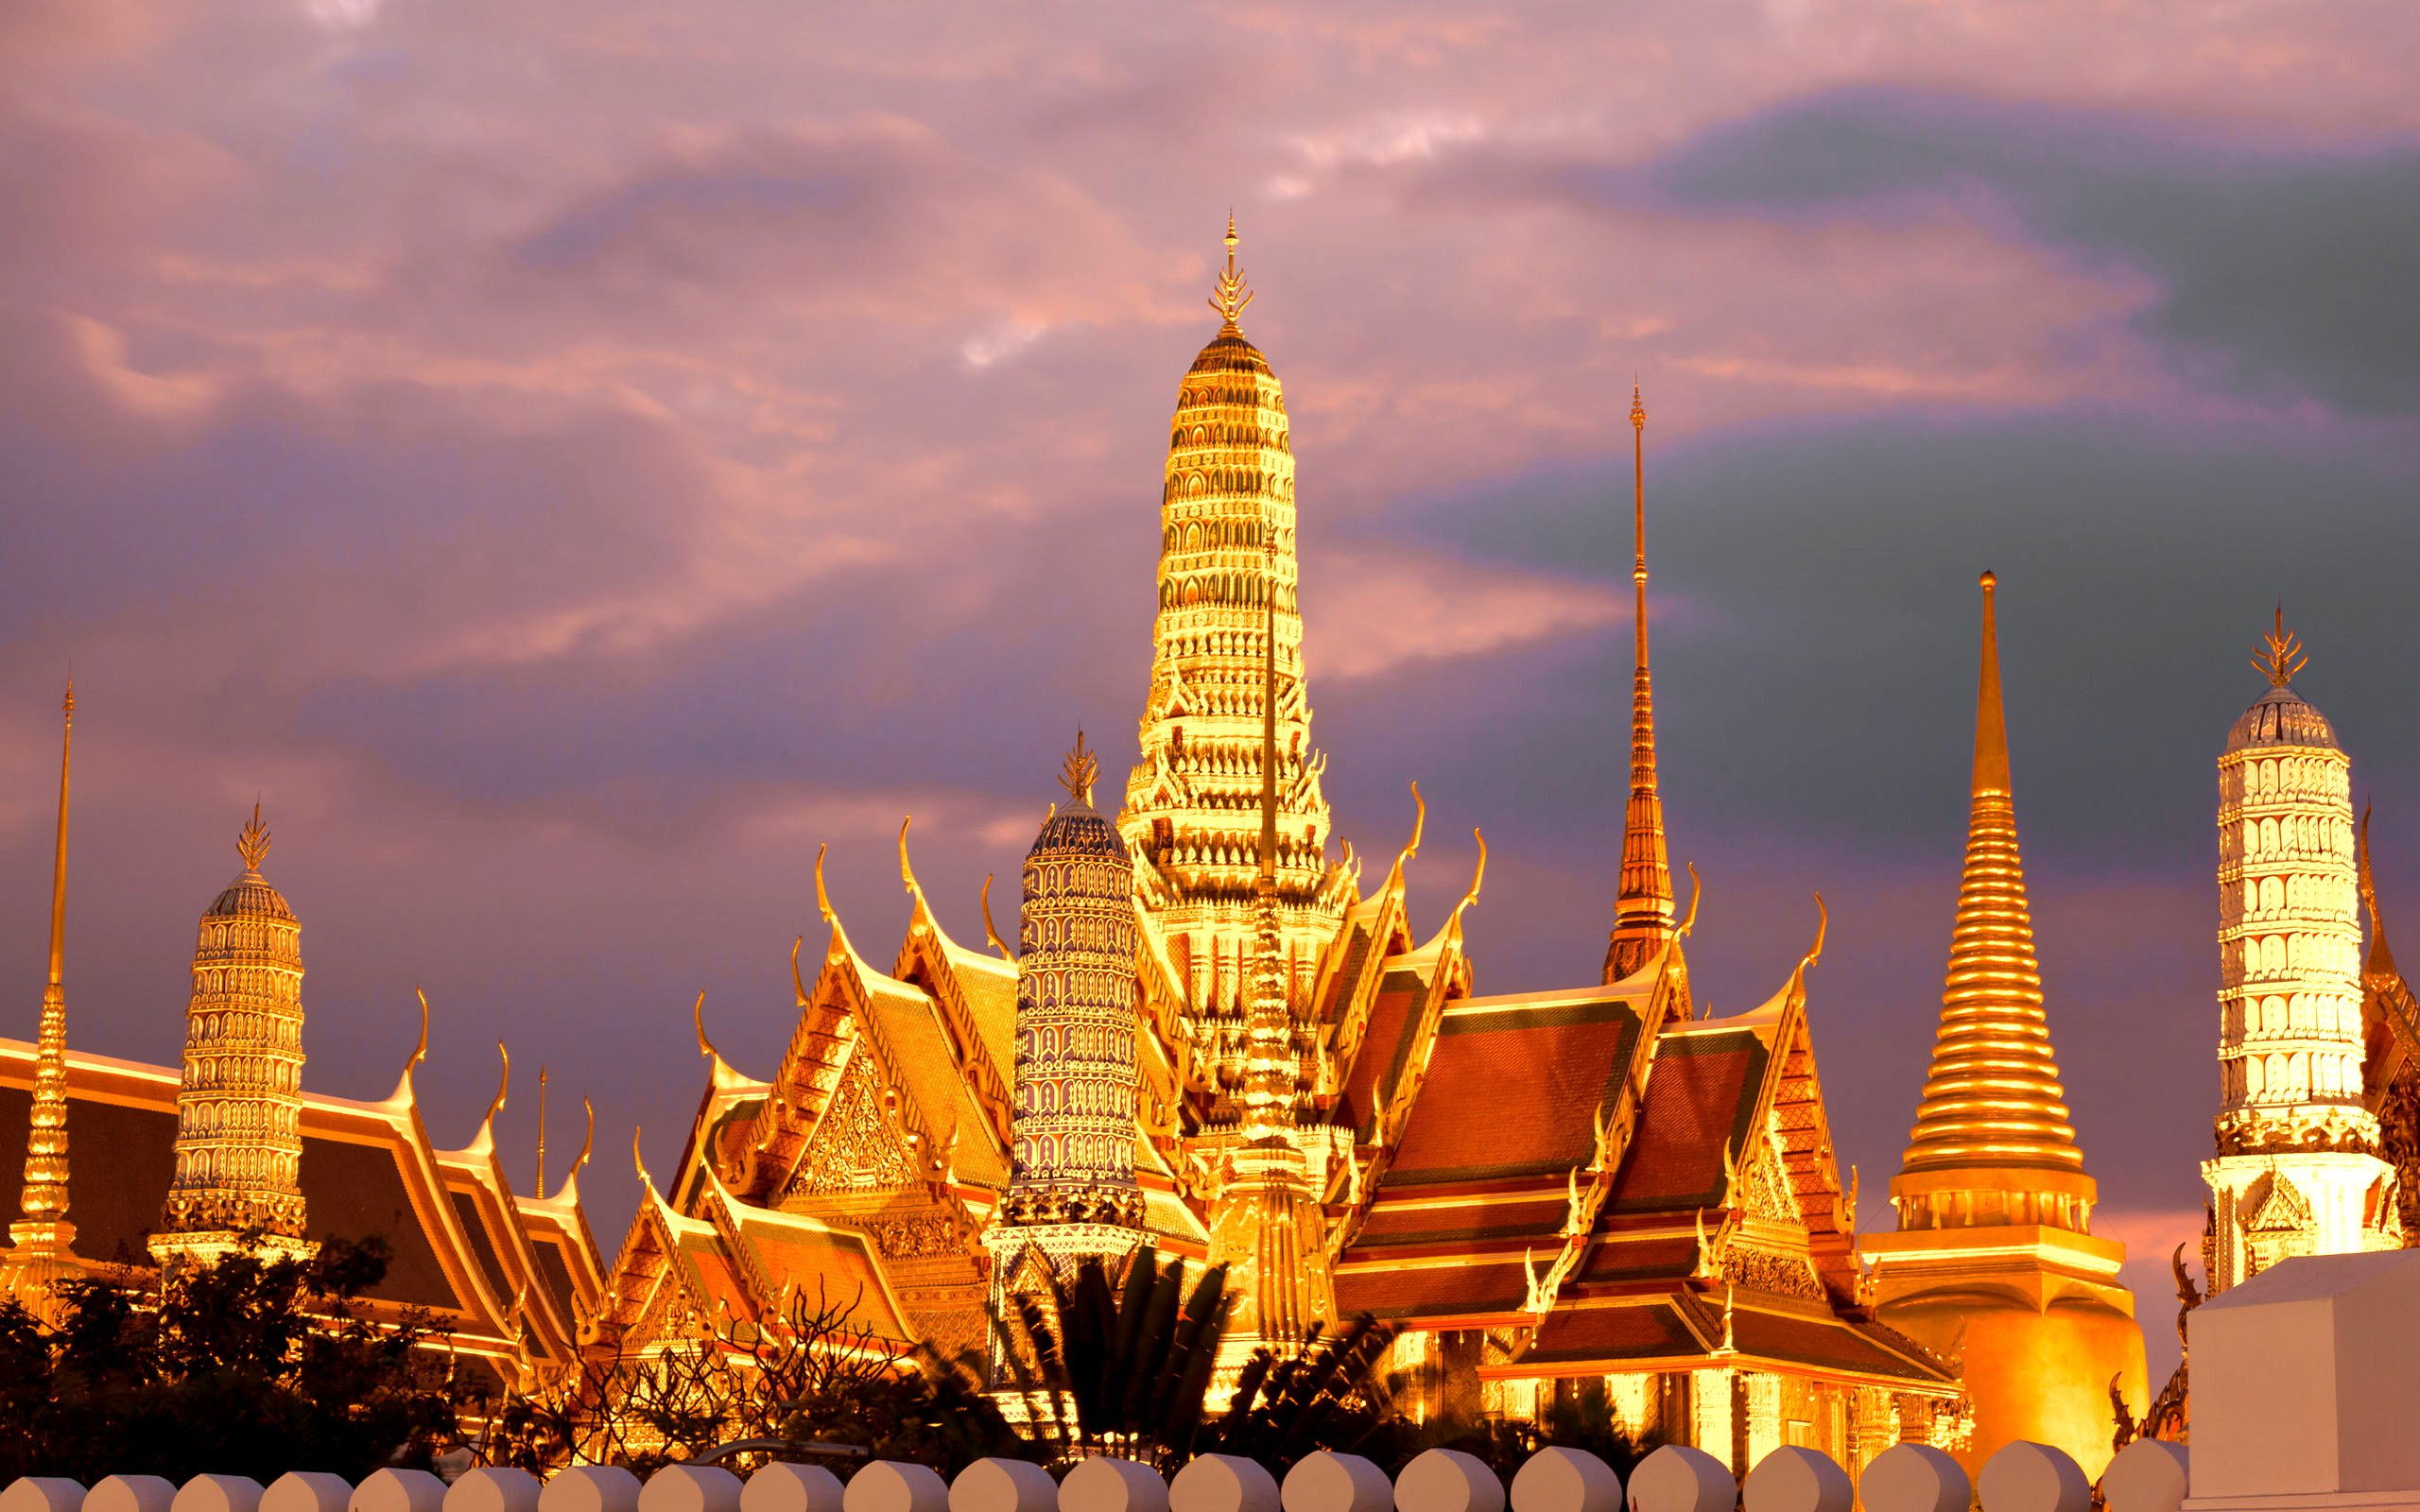 Temples in Bangkok Google image from https://thailandculturetravel.com/wp-content/uploads/2015/11/Amazing-Bagnkok.jpg